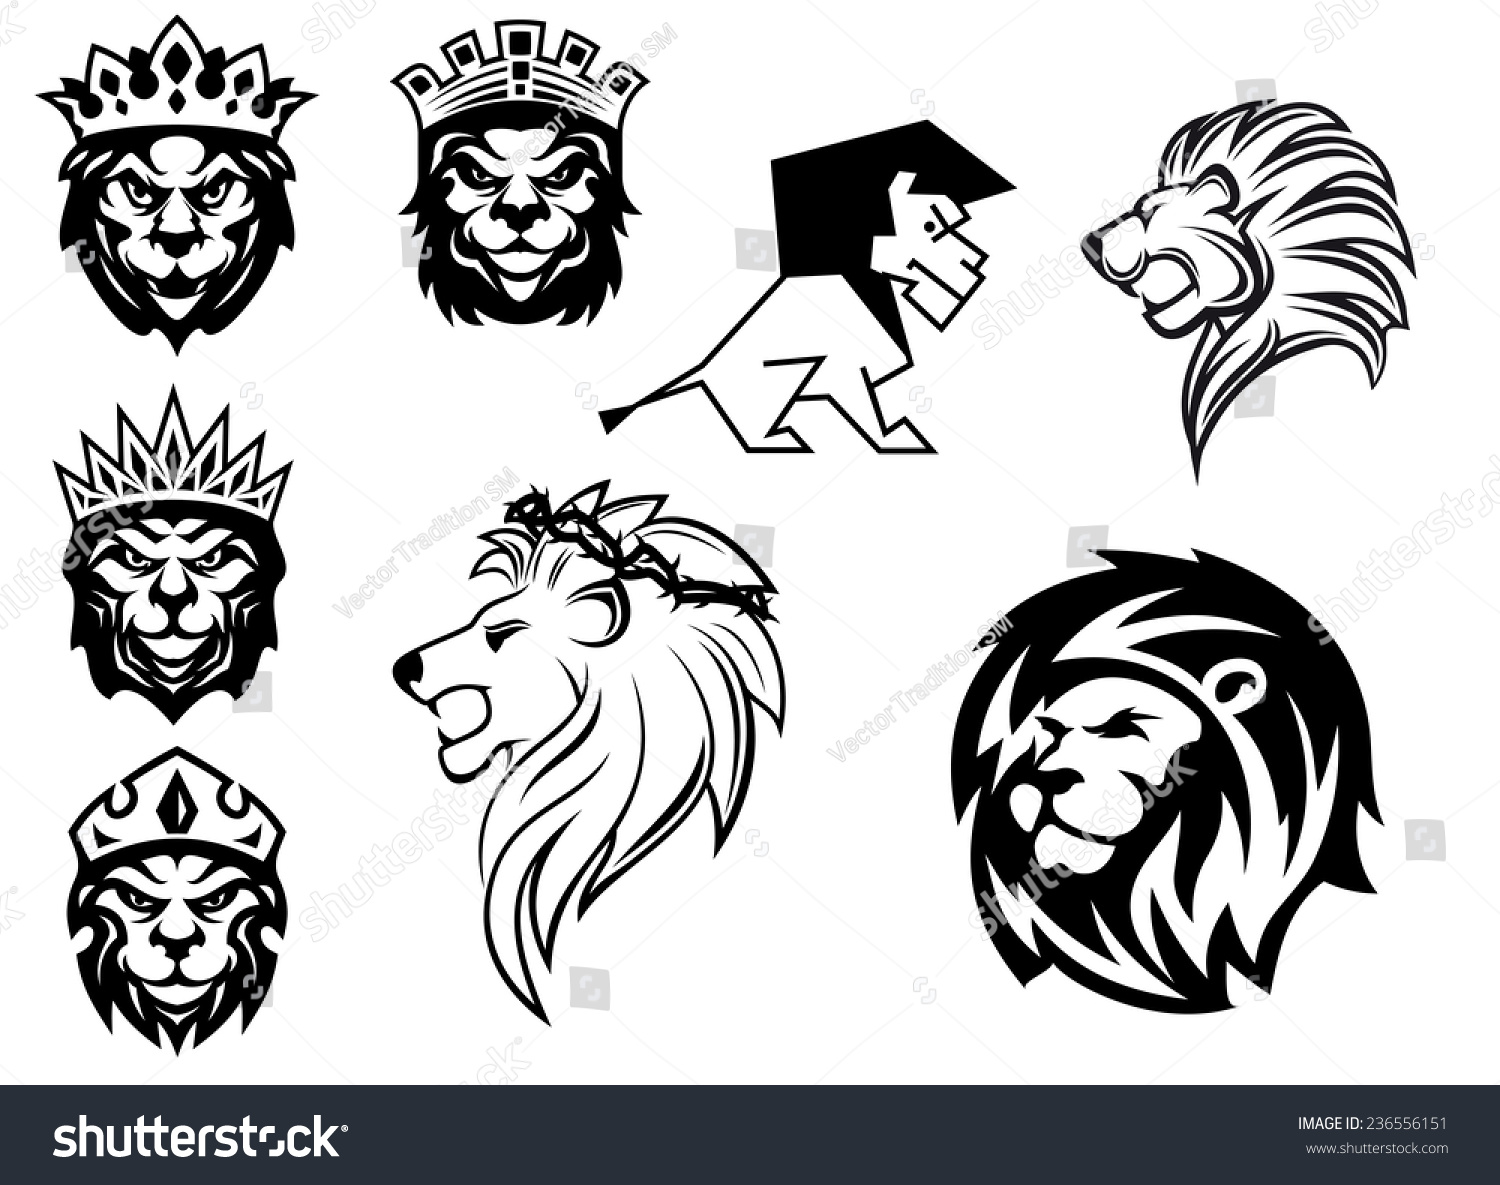 How to breed heraldic dragon - Black And White Heraldic Lions Heads For Emblem Heraldry And Animal King Concept Design